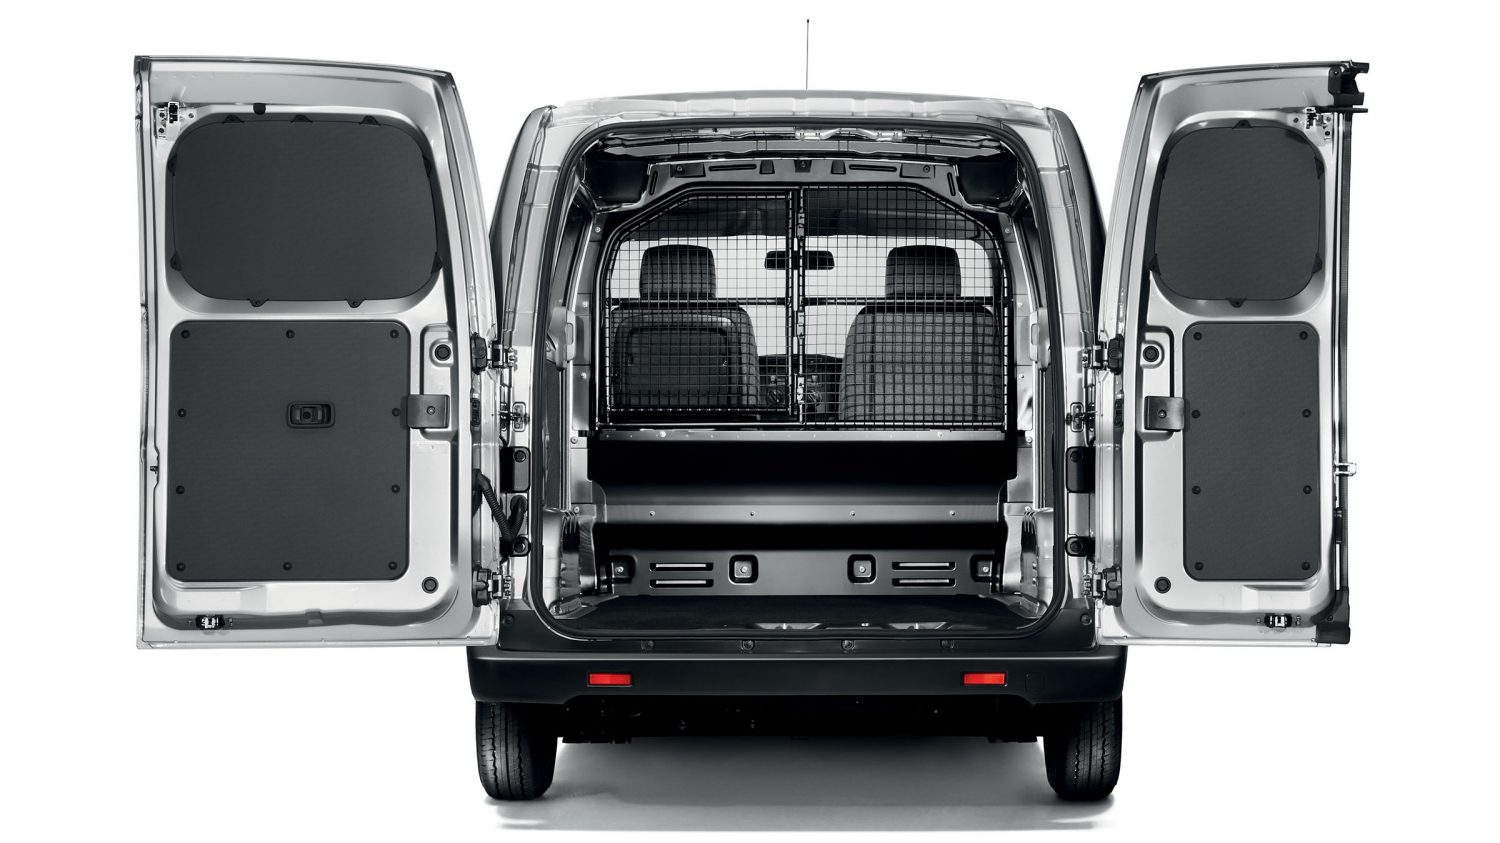 design nissan nv200 van commercial vehicle nissan. Black Bedroom Furniture Sets. Home Design Ideas